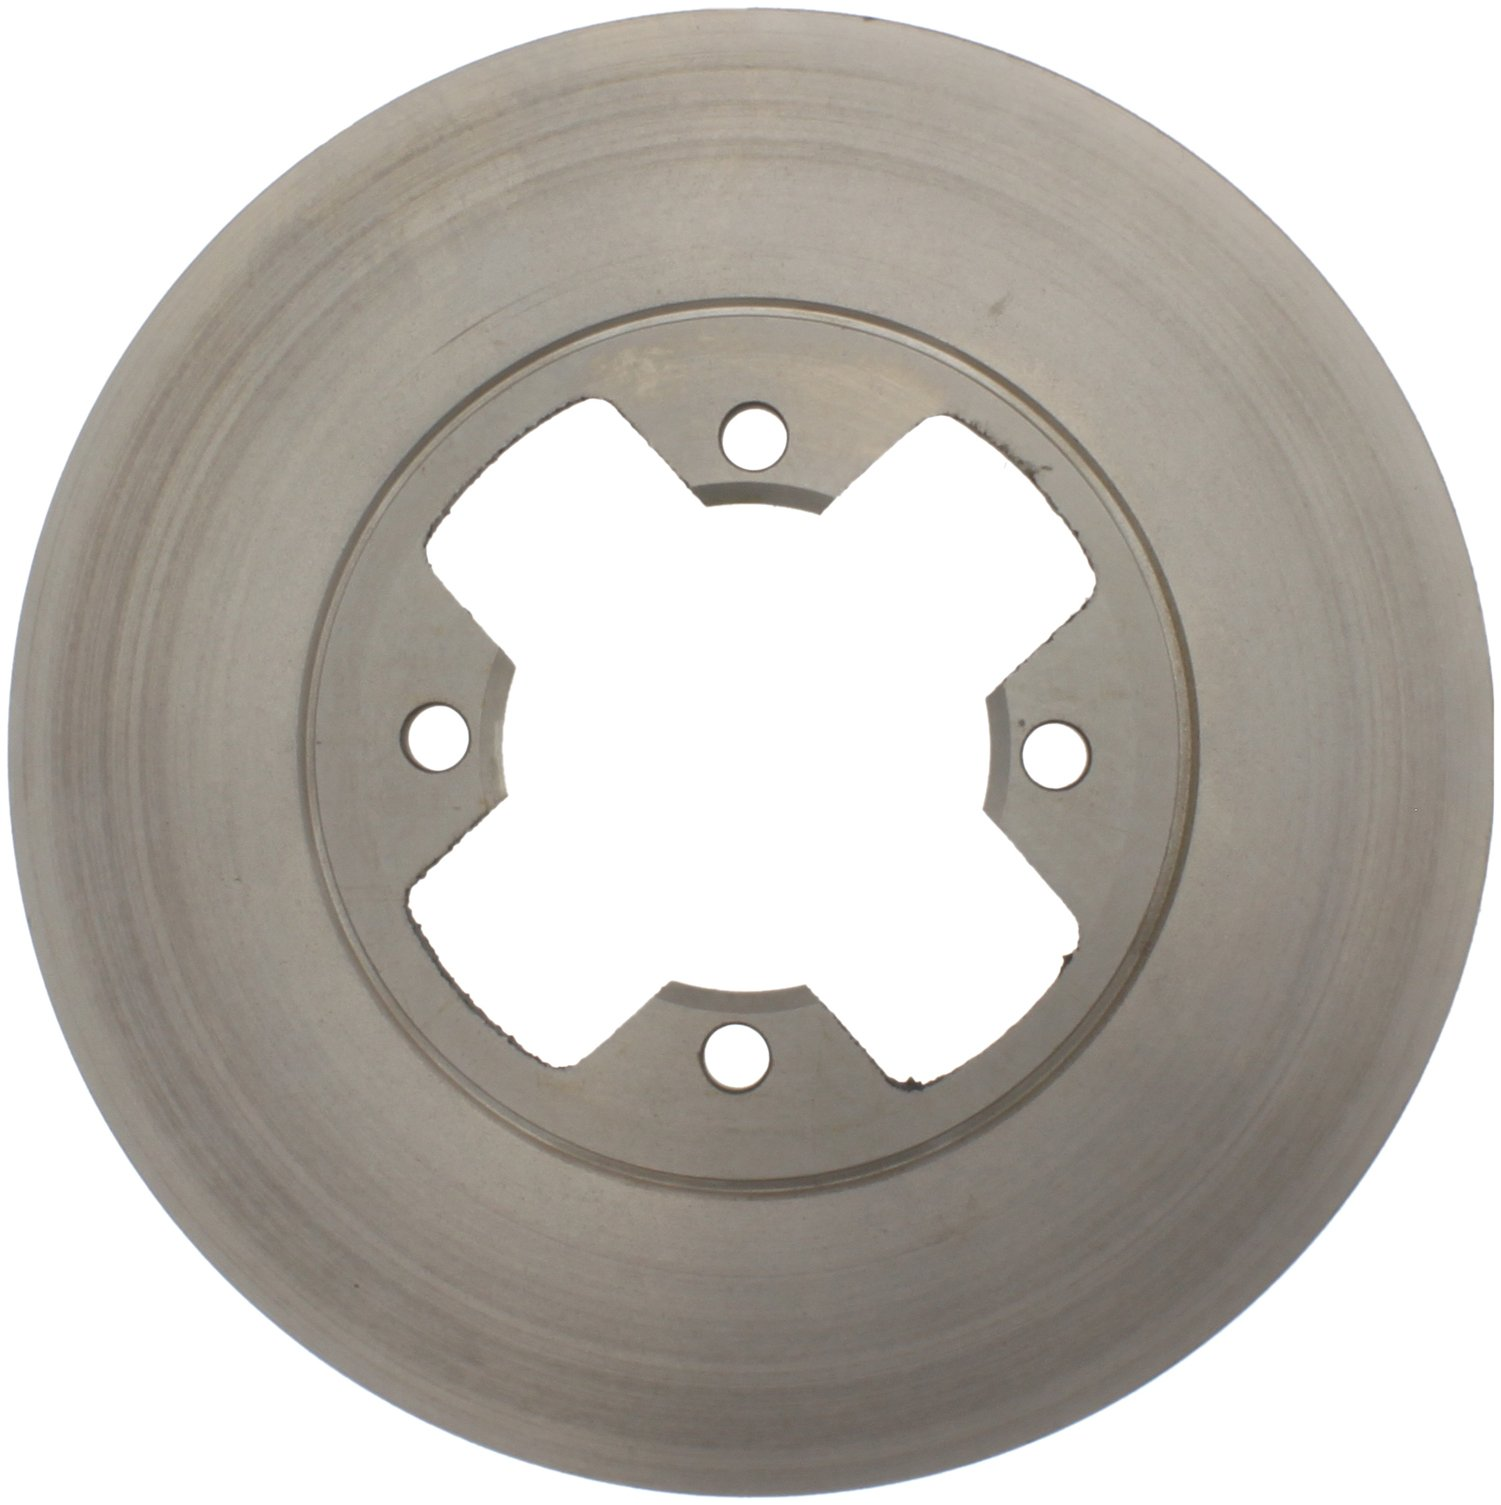 1982 Nissan 280ZX Disc Brake Rotor Front Right, Front Right, Front Right,  Front Right Centric 126 42005SR